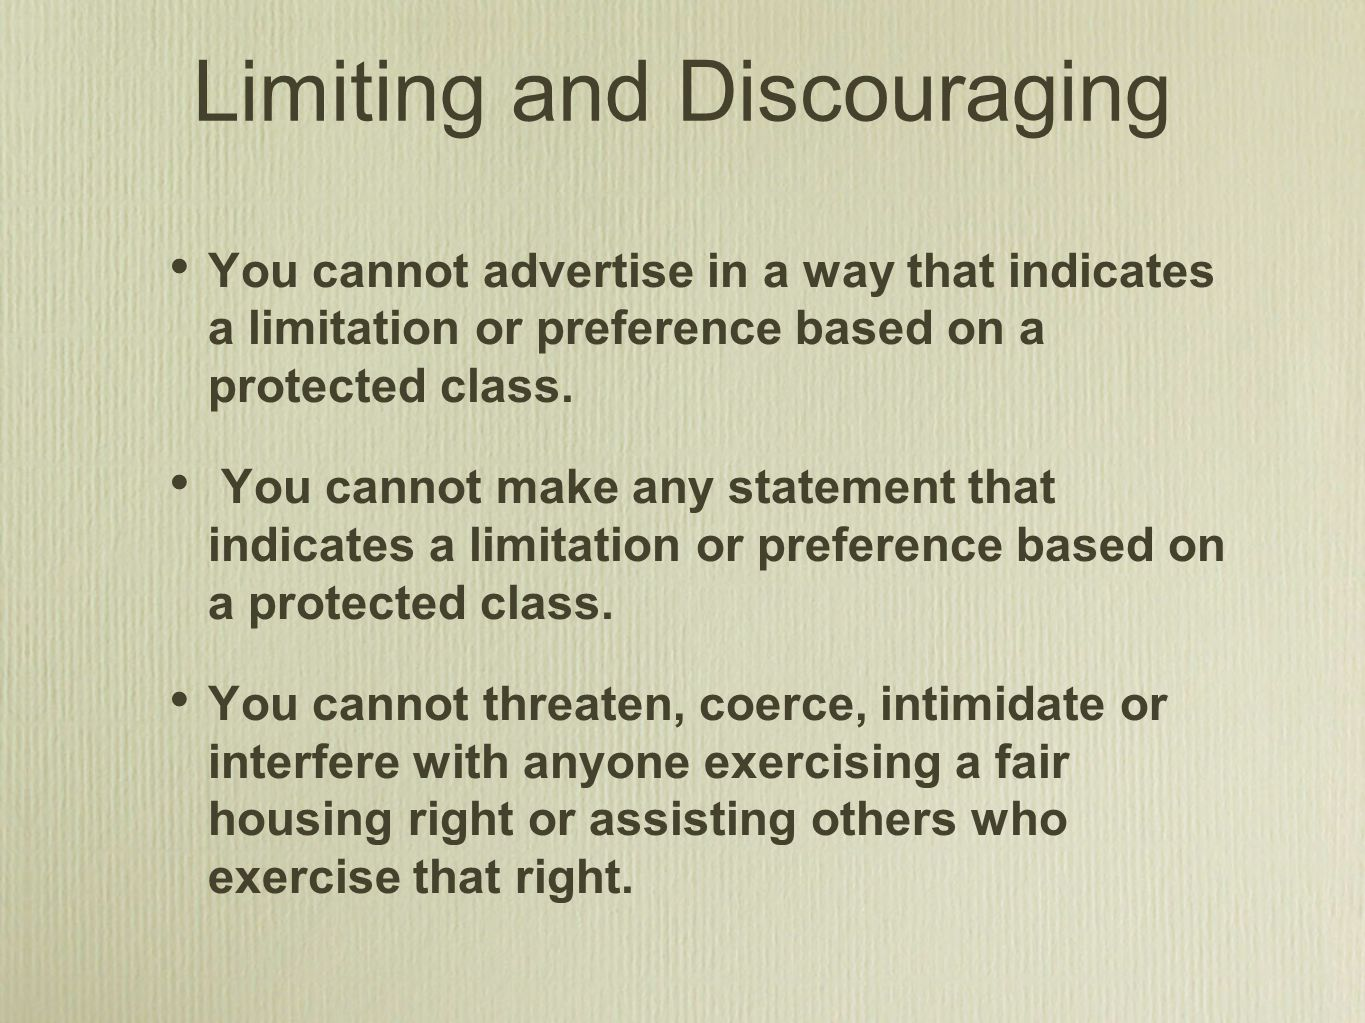 Limiting and Discouraging You cannot advertise in a way that indicates a limitation or preference based on a protected class.